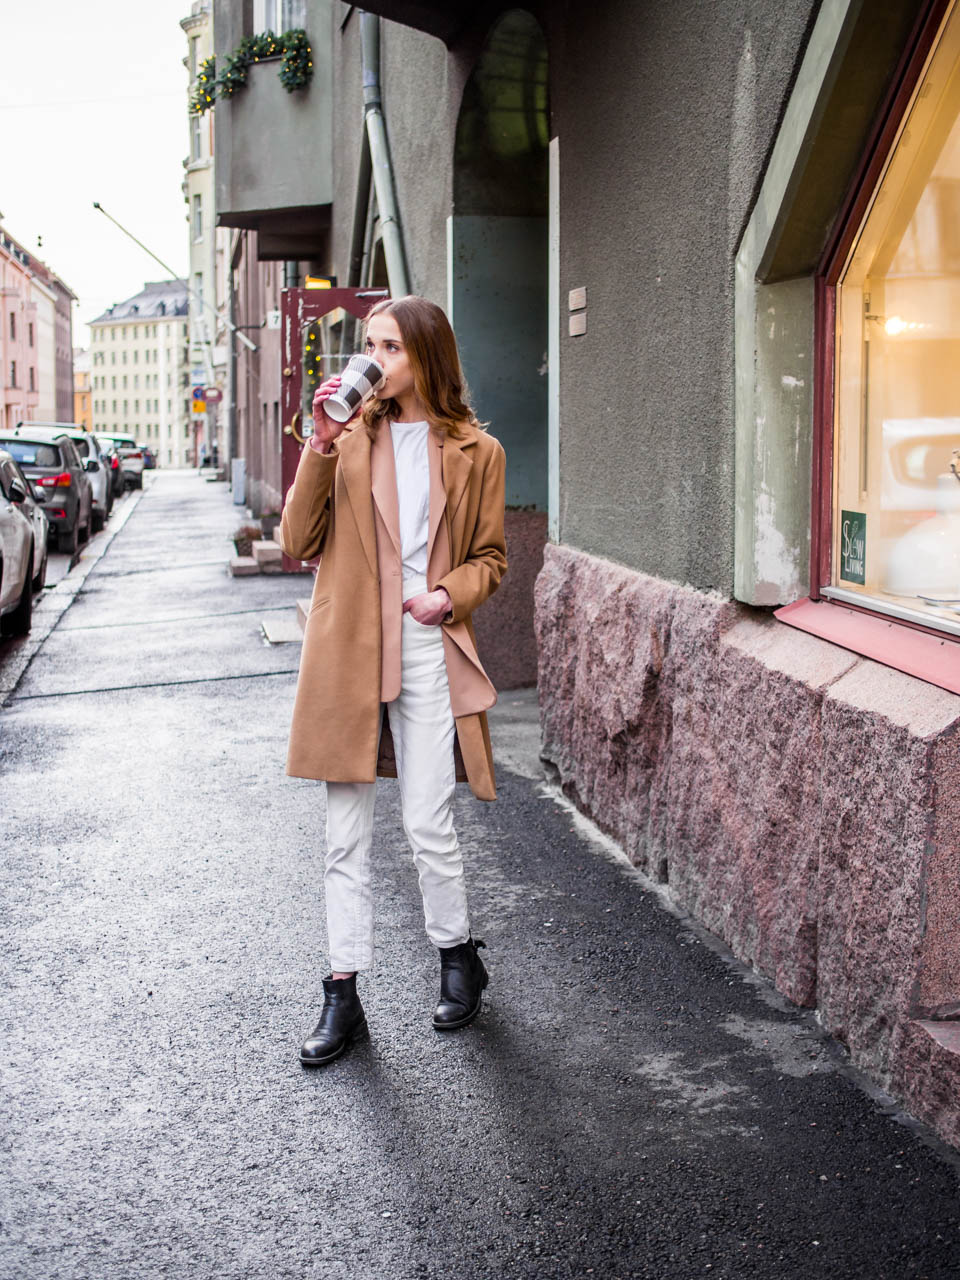 Scandinavian fashion blogger outfit inspiration, neutral colours - Skandinaavinen tyyli, muotibloggaaja, neutraalit värit